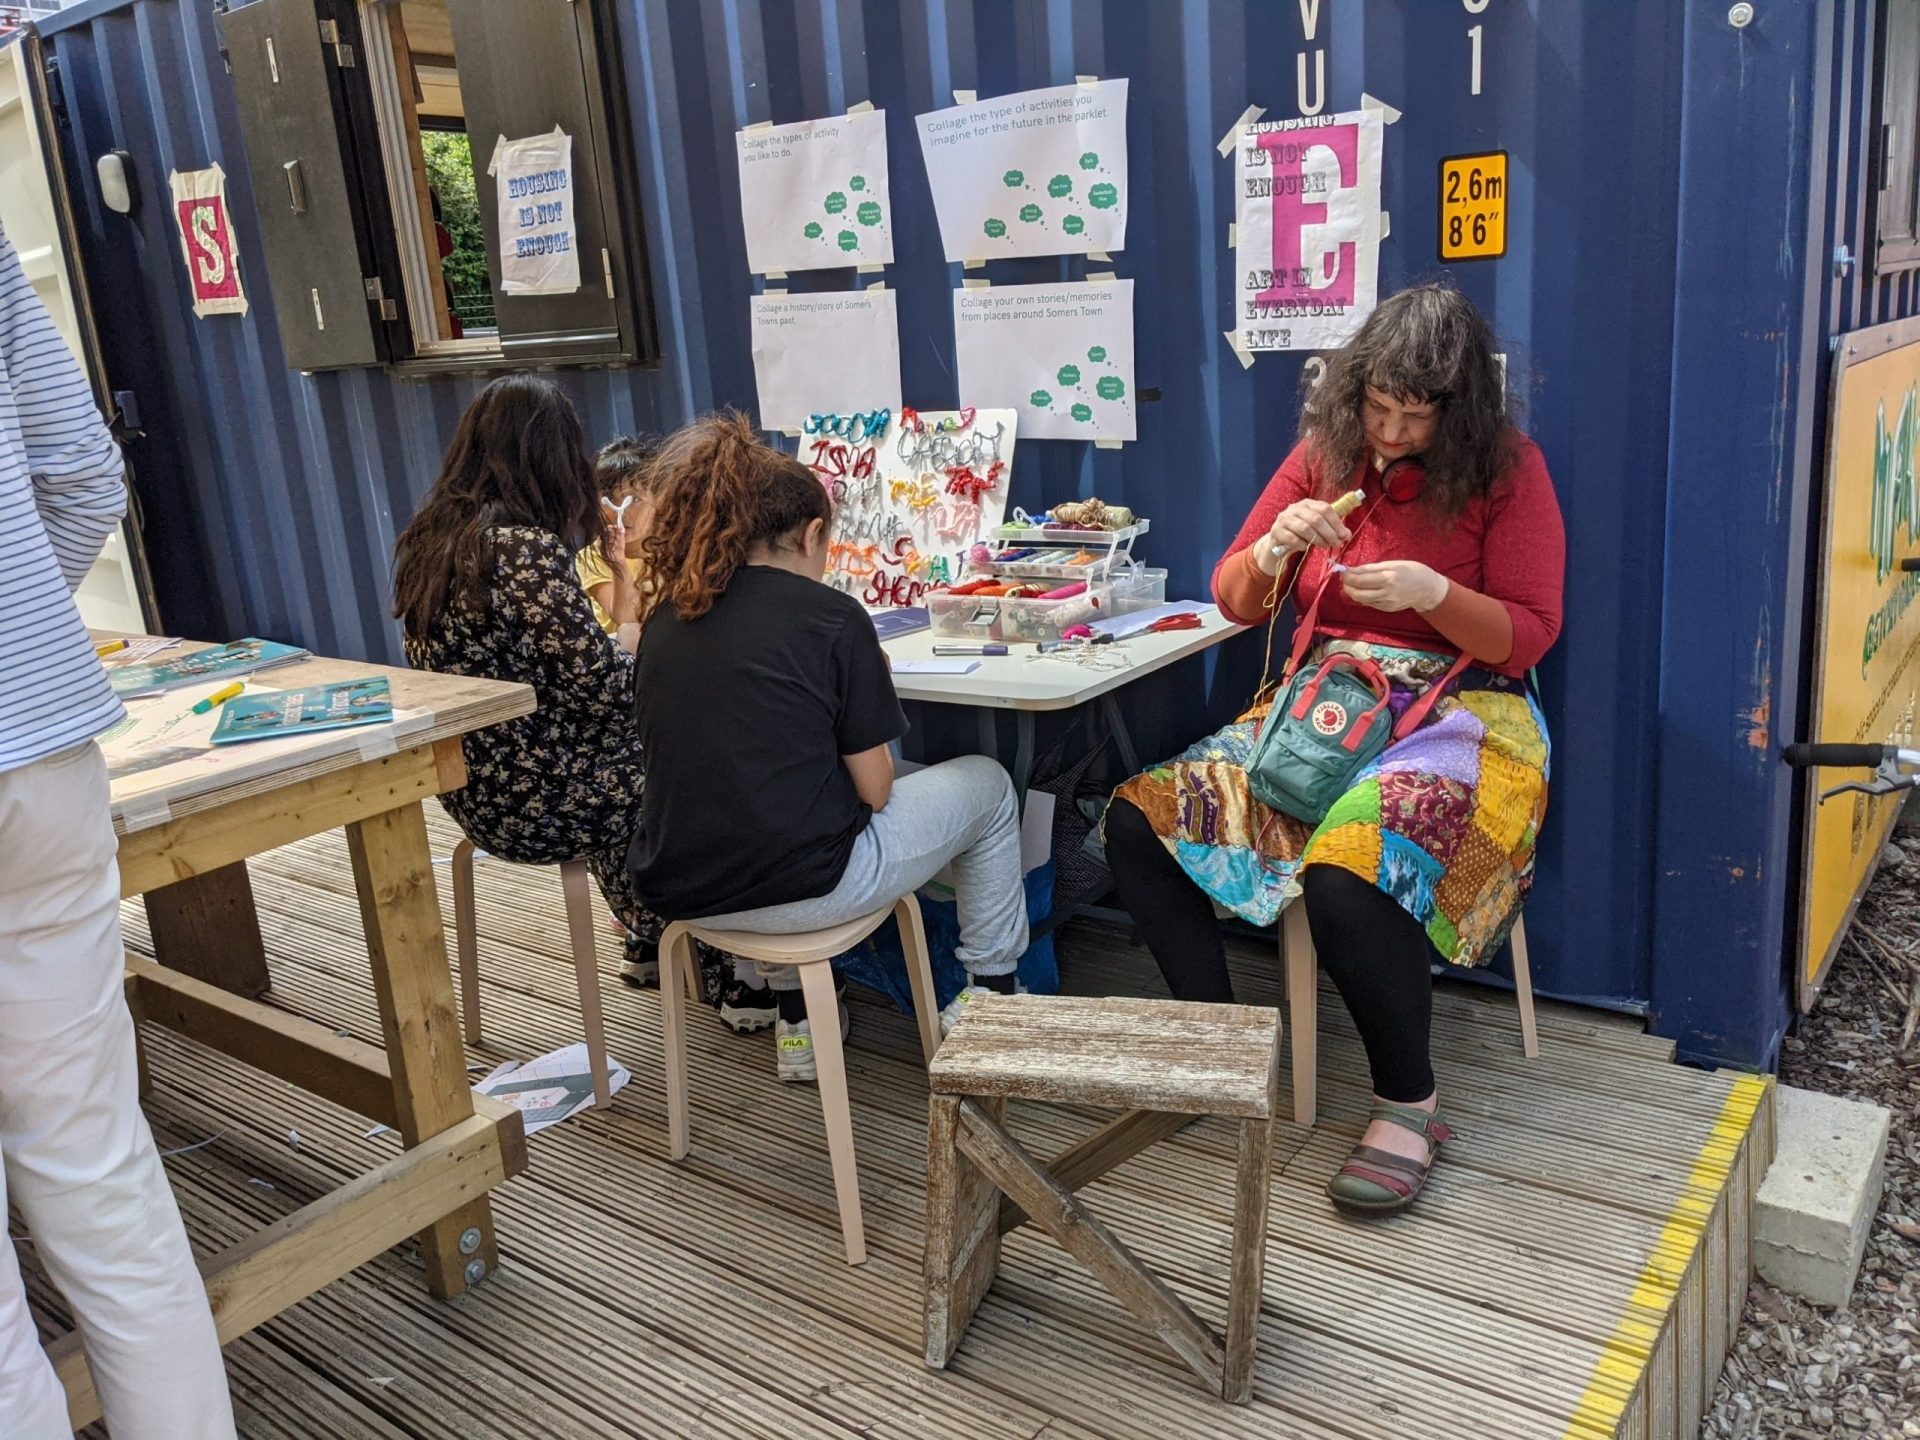 Craft activity in a group